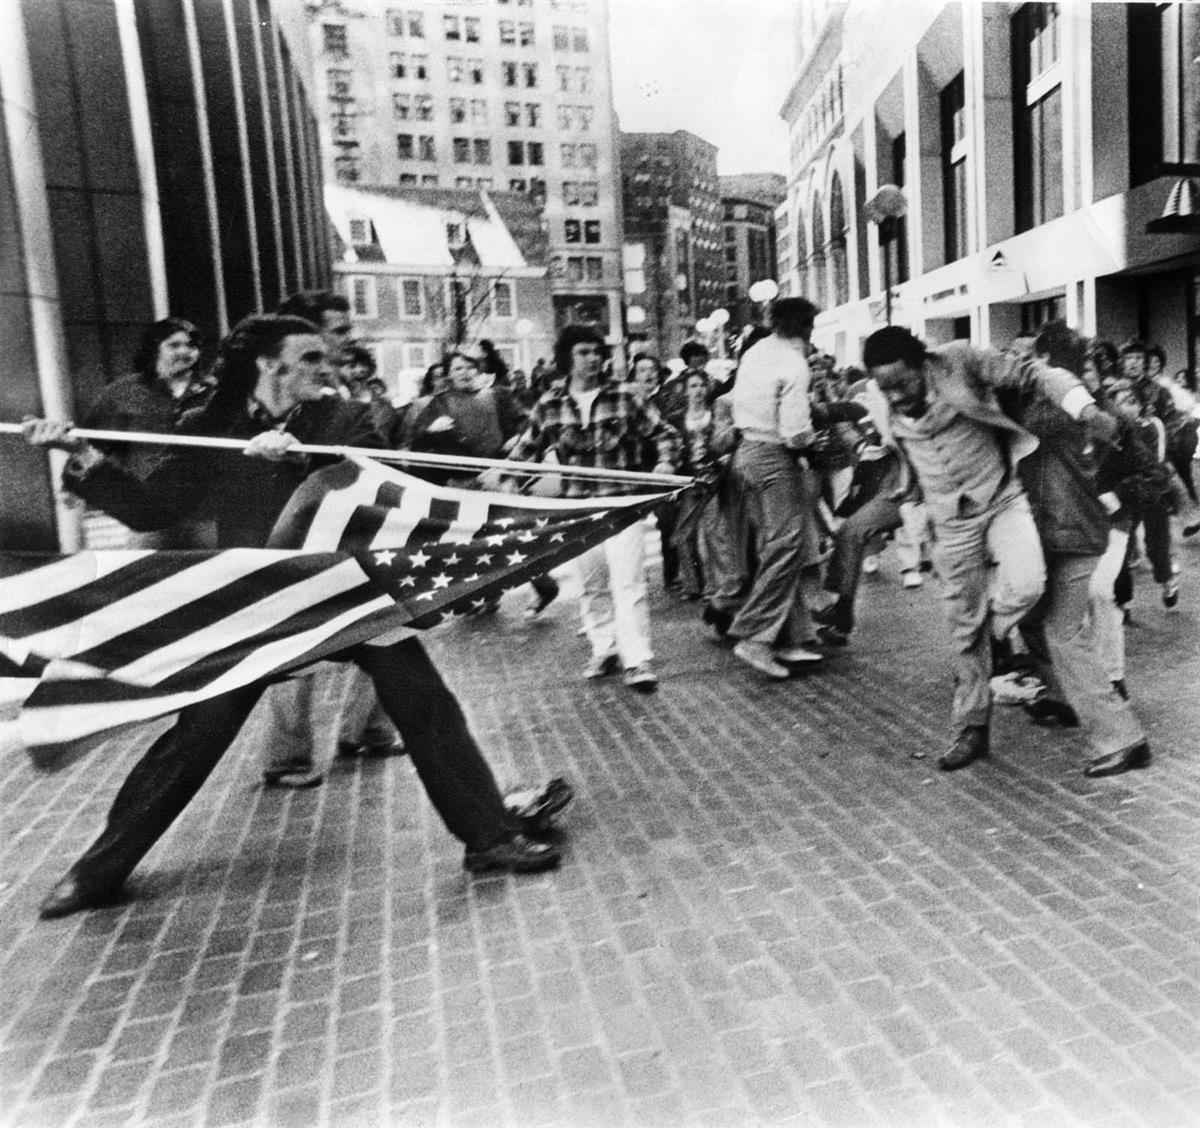 'The Soiling of Old Glory' April 5th, 1976Boston